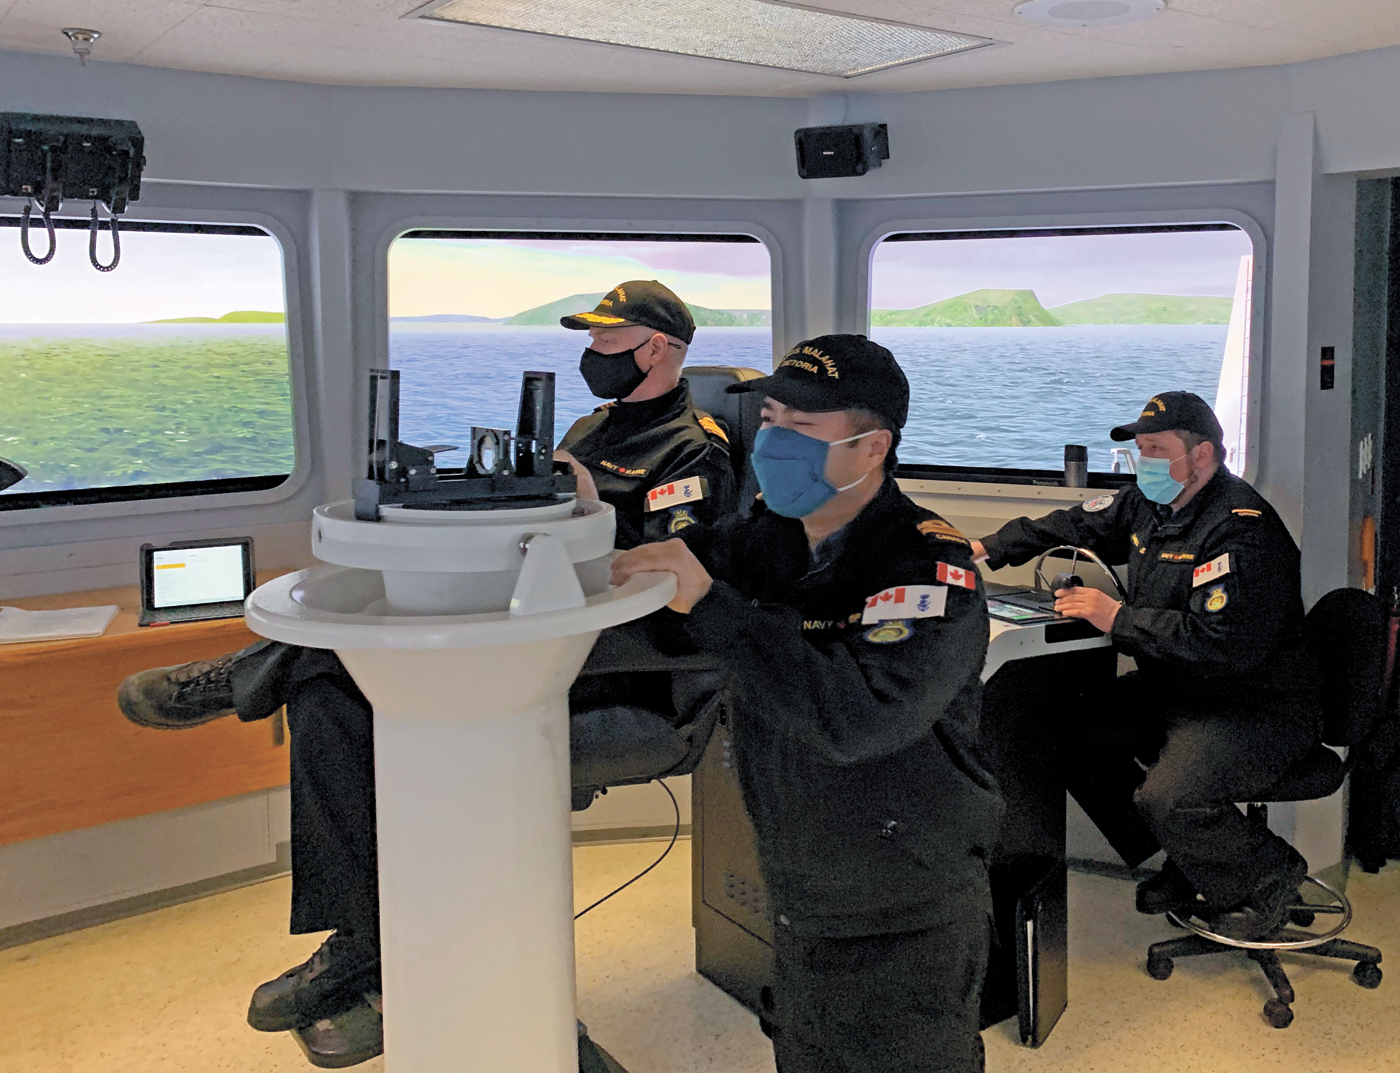 Steady as she goes through the Gulf Islands - members of HMCS Malahat take part in NABS simulation training at CFB Esquimalt on Feb. 6-7.